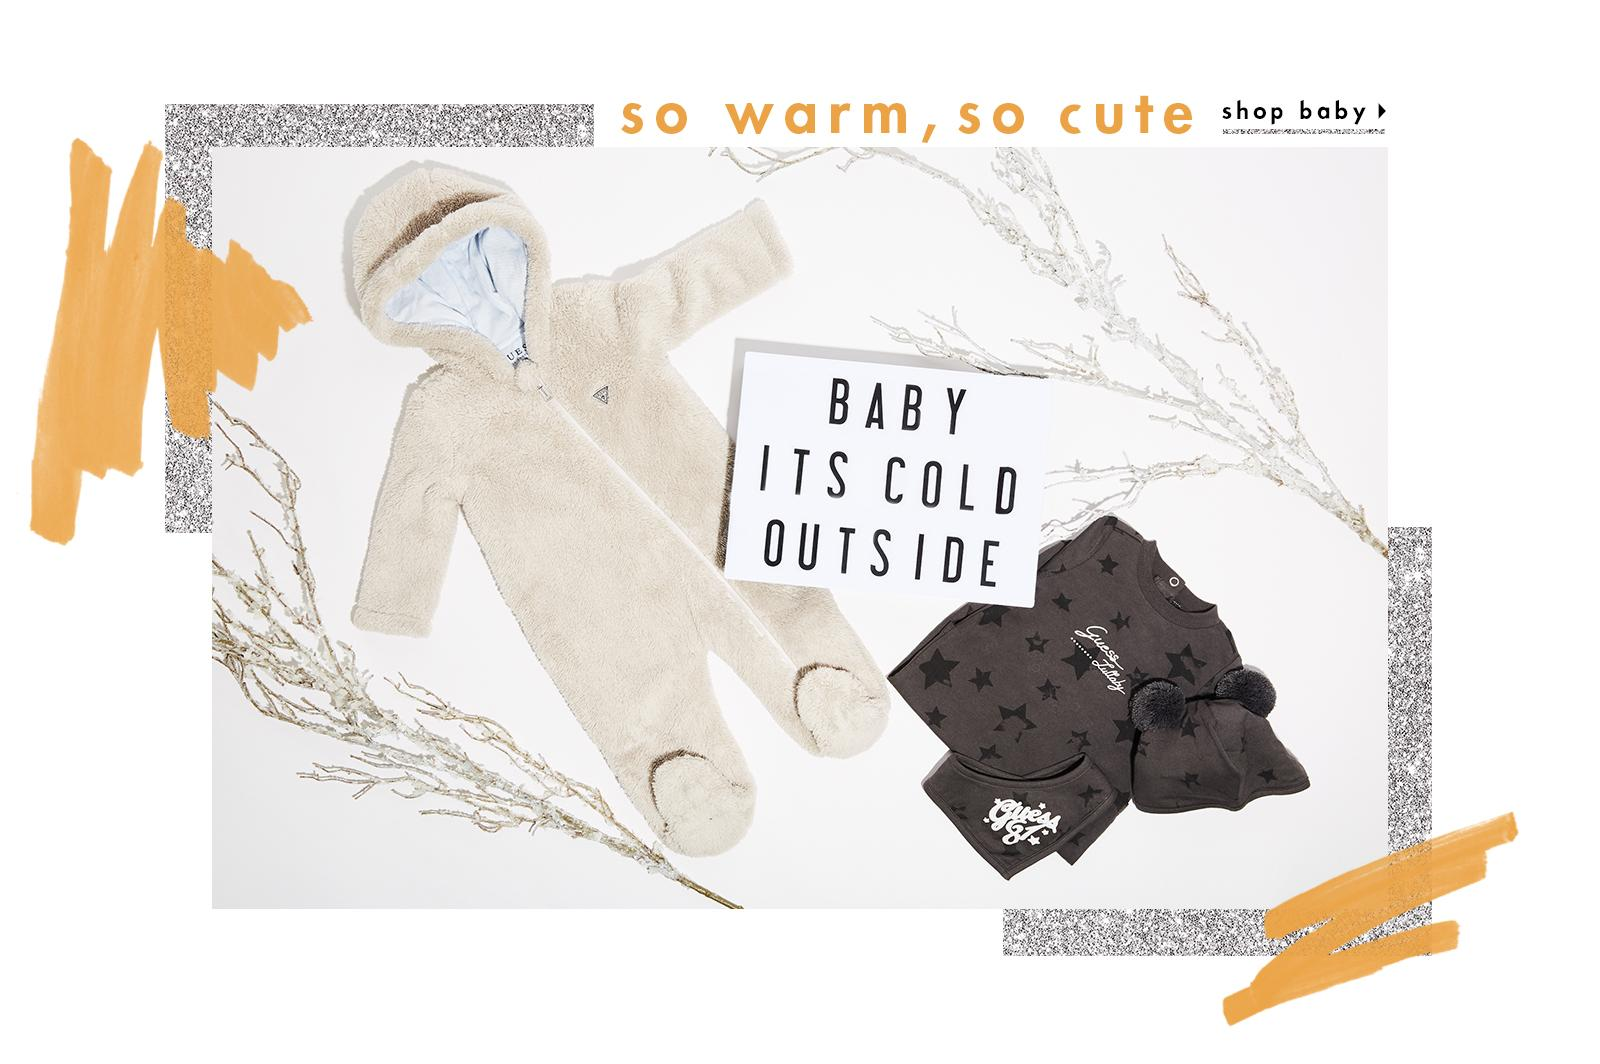 Cutest Gifts Ever Shop Baby